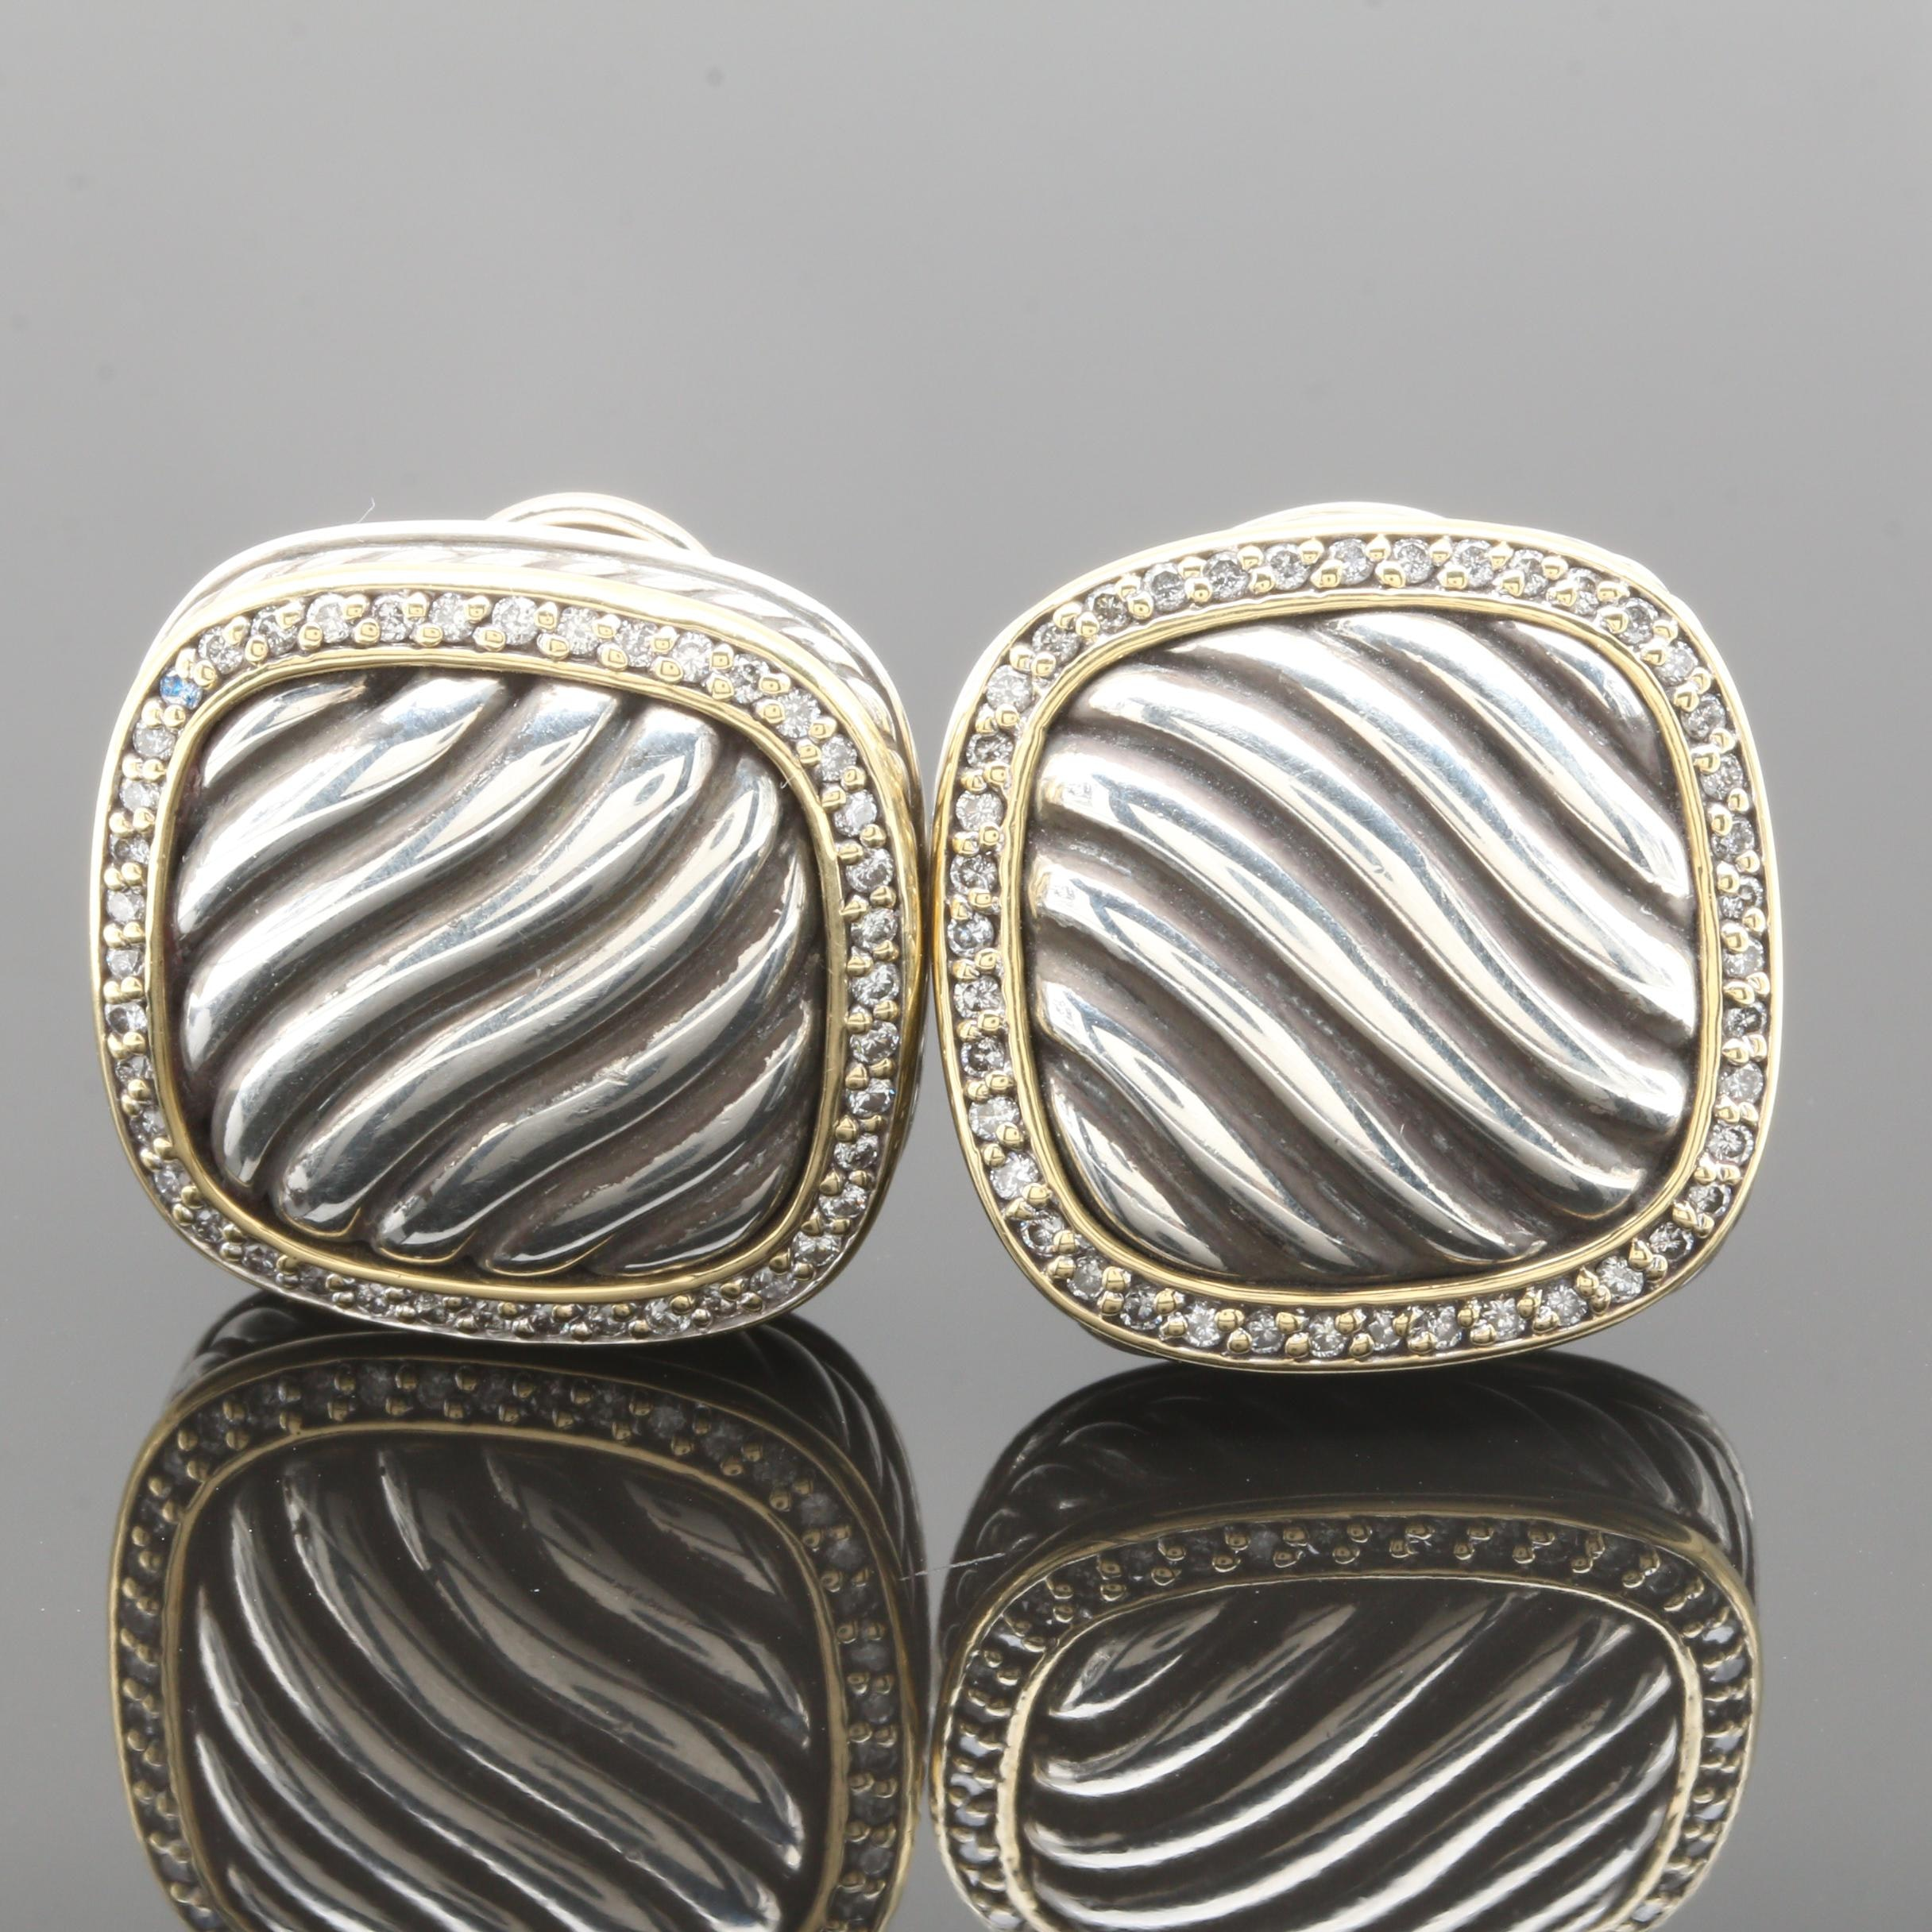 David Yurman 18K Yellow Gold and Sterling Silver Earrings